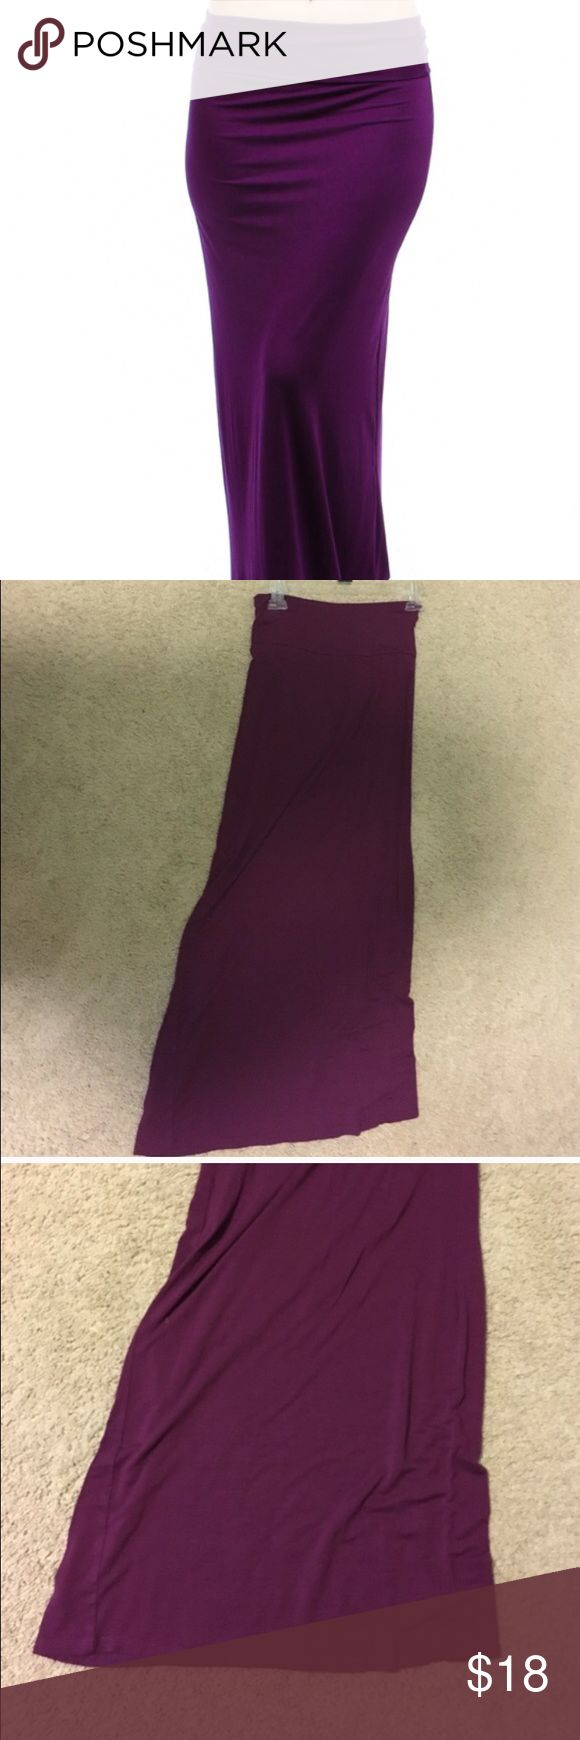 Purple Maxi Skirt Purple/maroon colored fold over maxi skirt. Color best represented in the 3rd pic. No slits on either side. Like new condition. ❌No Trades ❌No Holds ✅Posh Only ✅ Smoke Free Home ✅Offers Considered ✅Special Bundle Deals (just ask!) Rue 21 Skirts Maxi